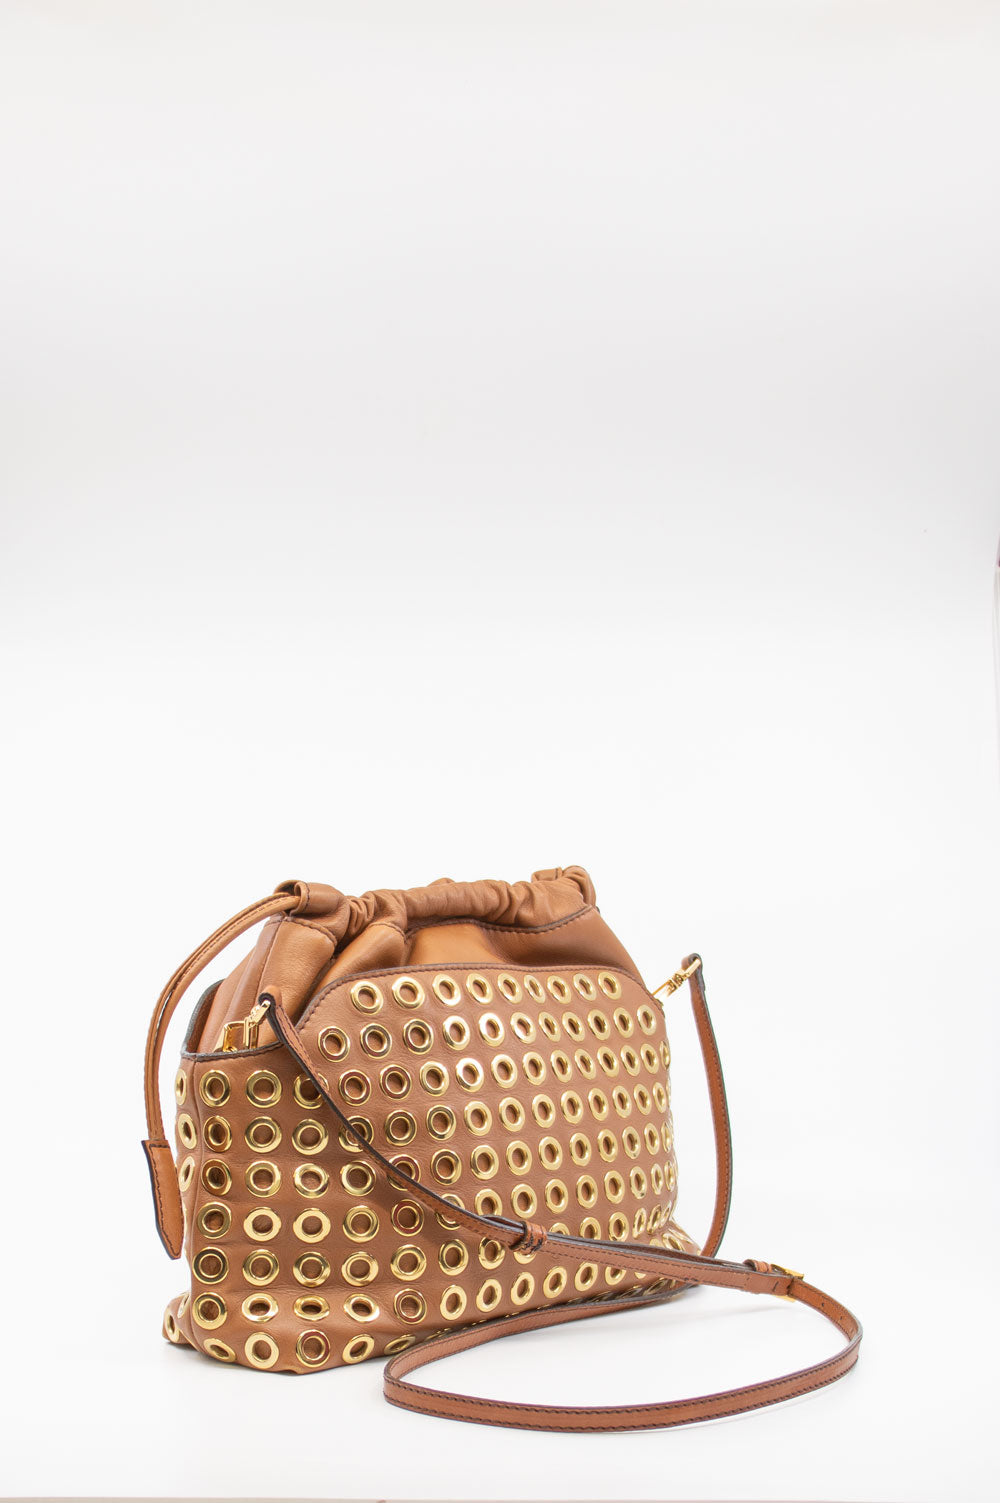 BURBERRY PRORSUM The Crush Bag Cognac